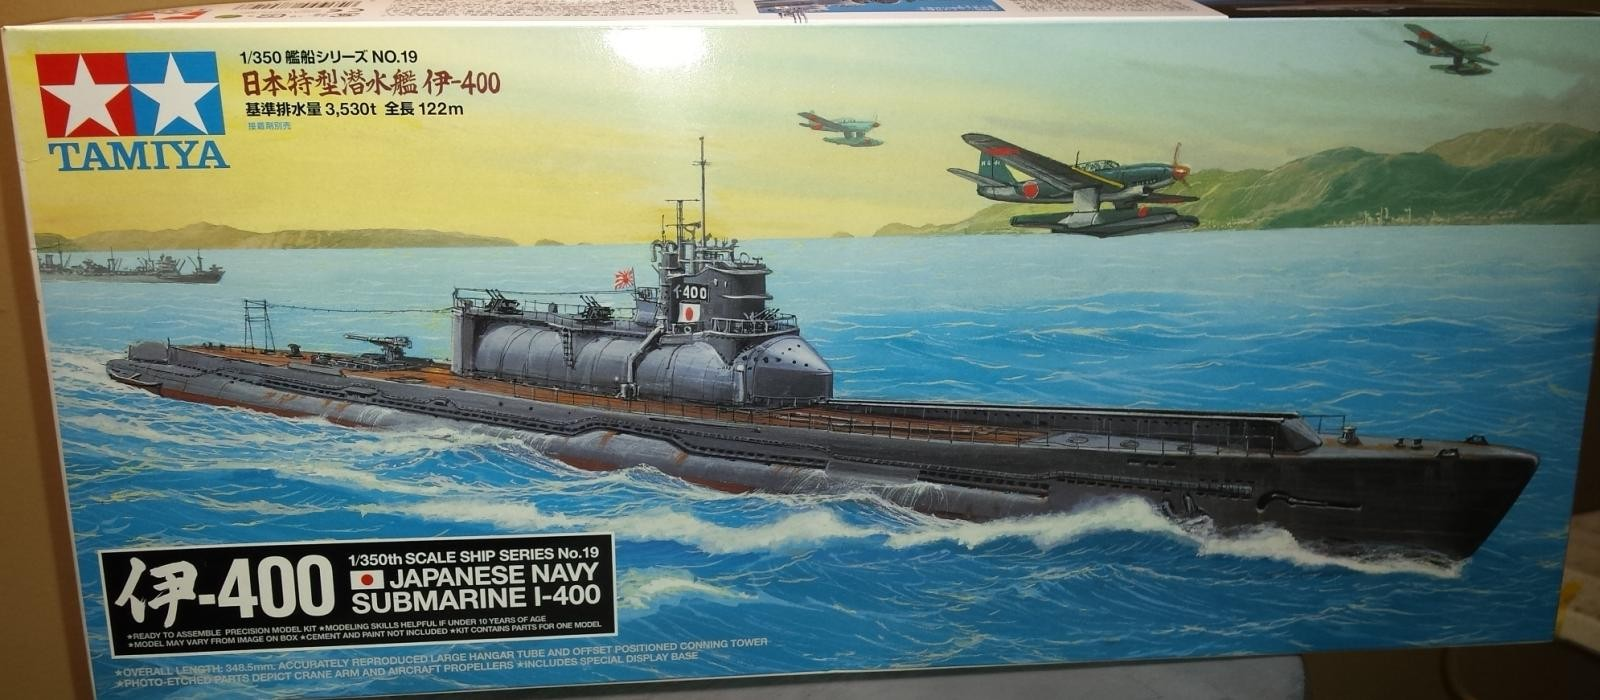 hight resolution of after a member reviewed my recent posting of my revell 1 144 german u boat model he asked if i could apply same modeling techniques to build the tamiya